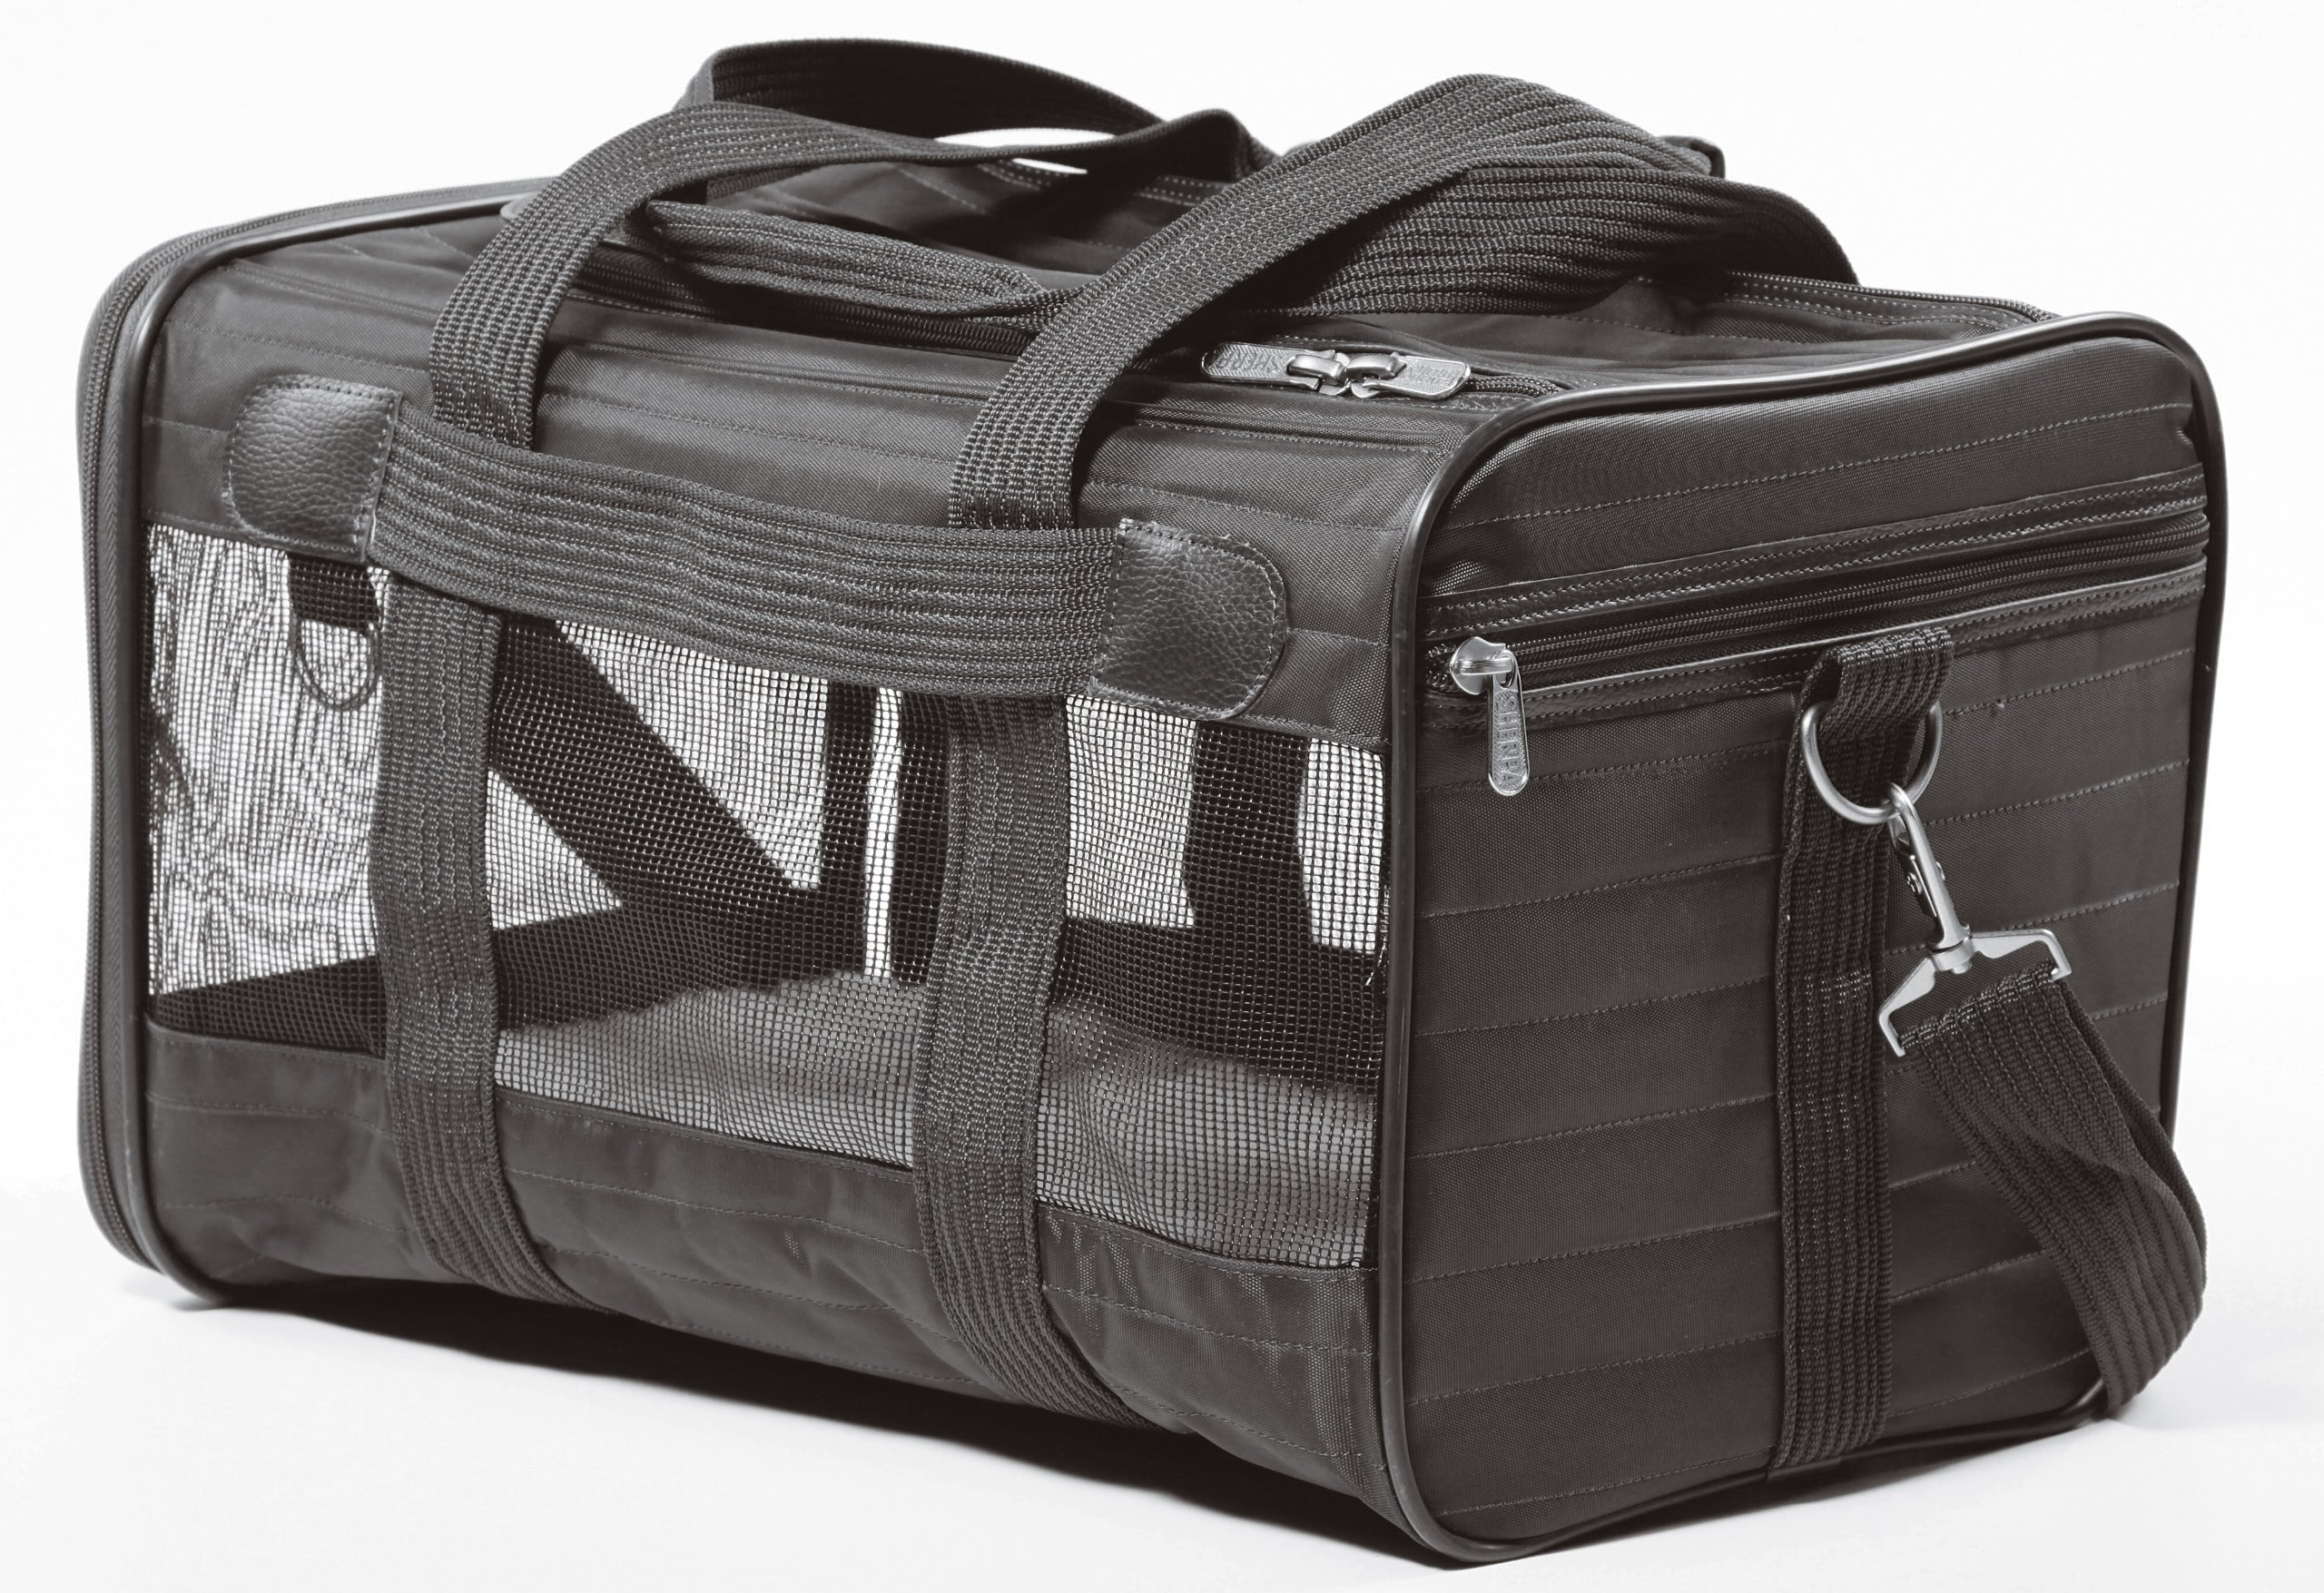 Sherpa Deluxe Pet Carriers by Sherpa